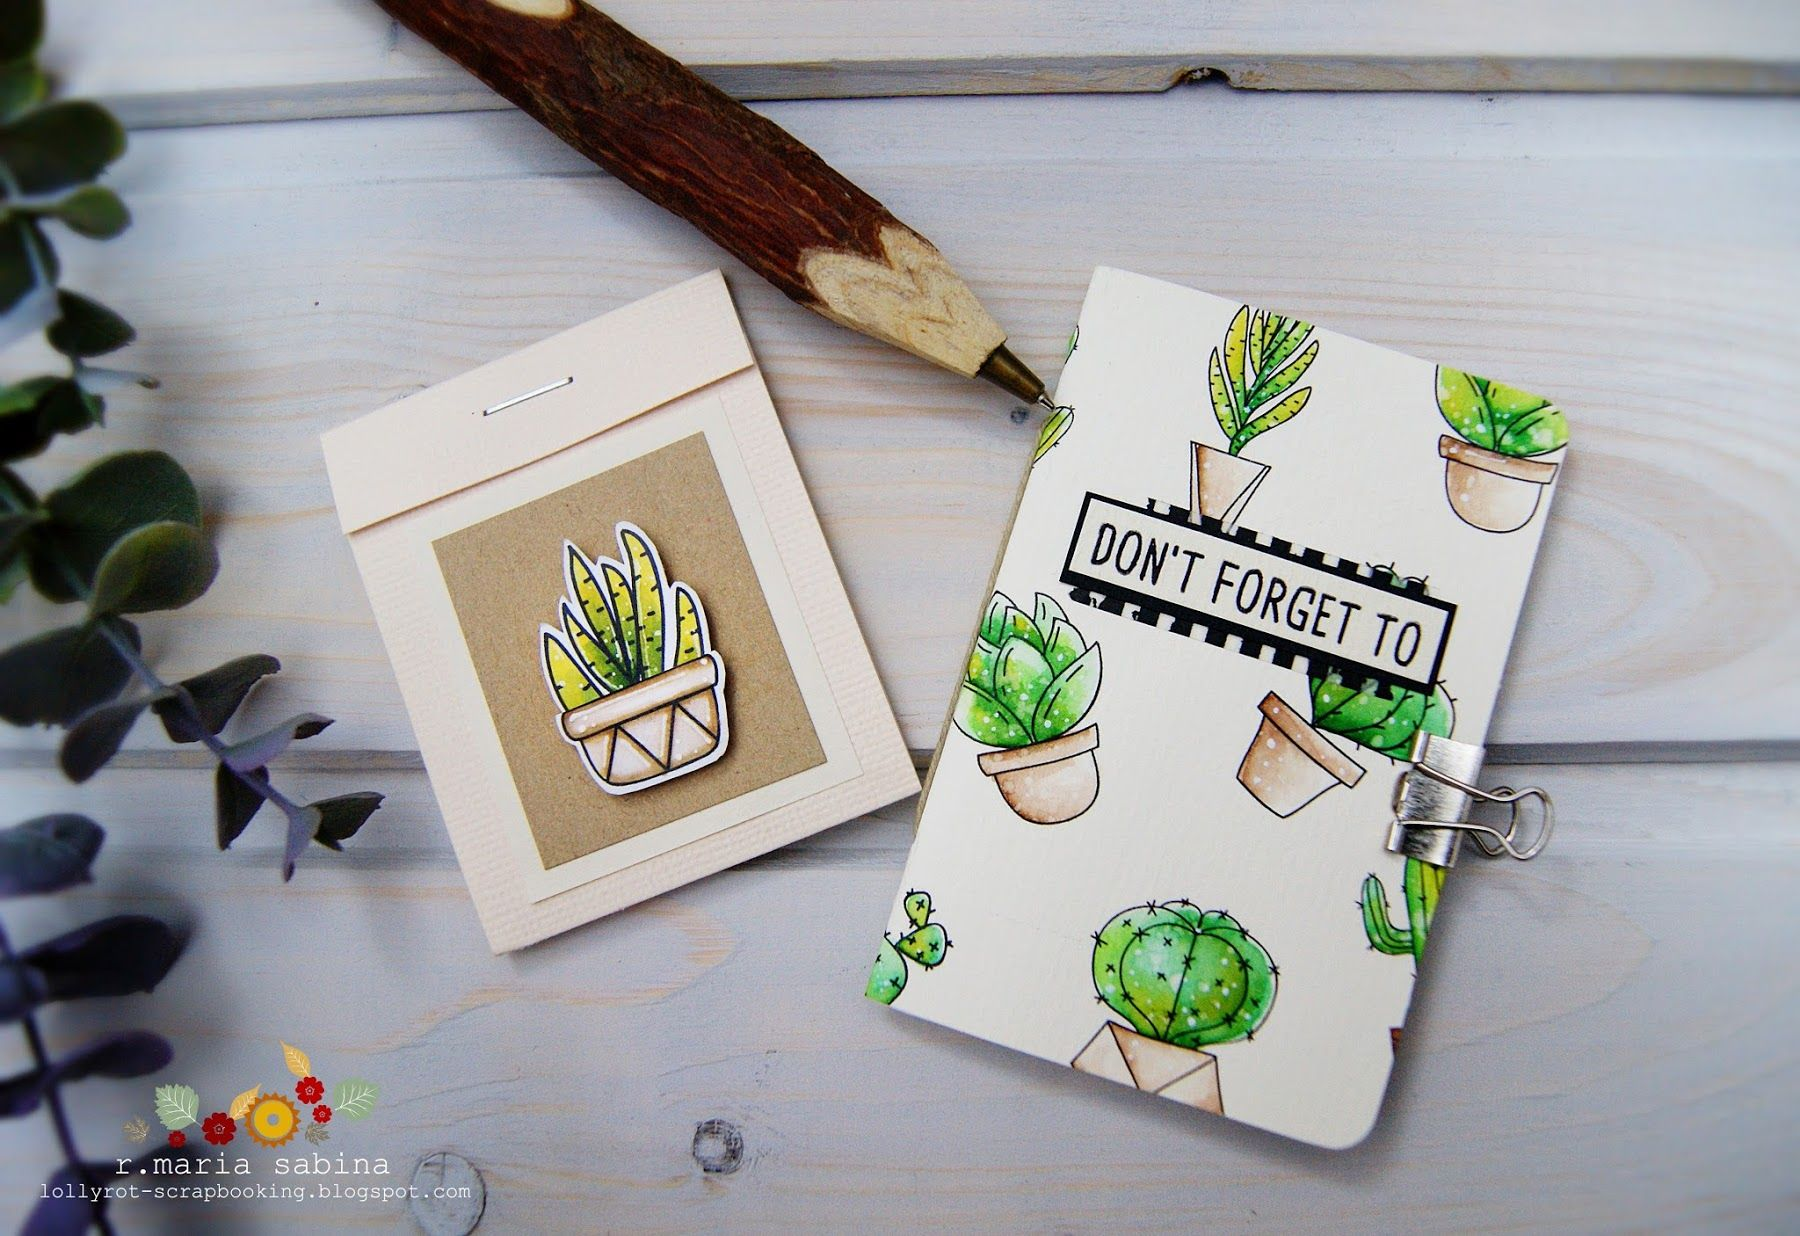 Lollyrot Scrapbooking: Don't forget to...